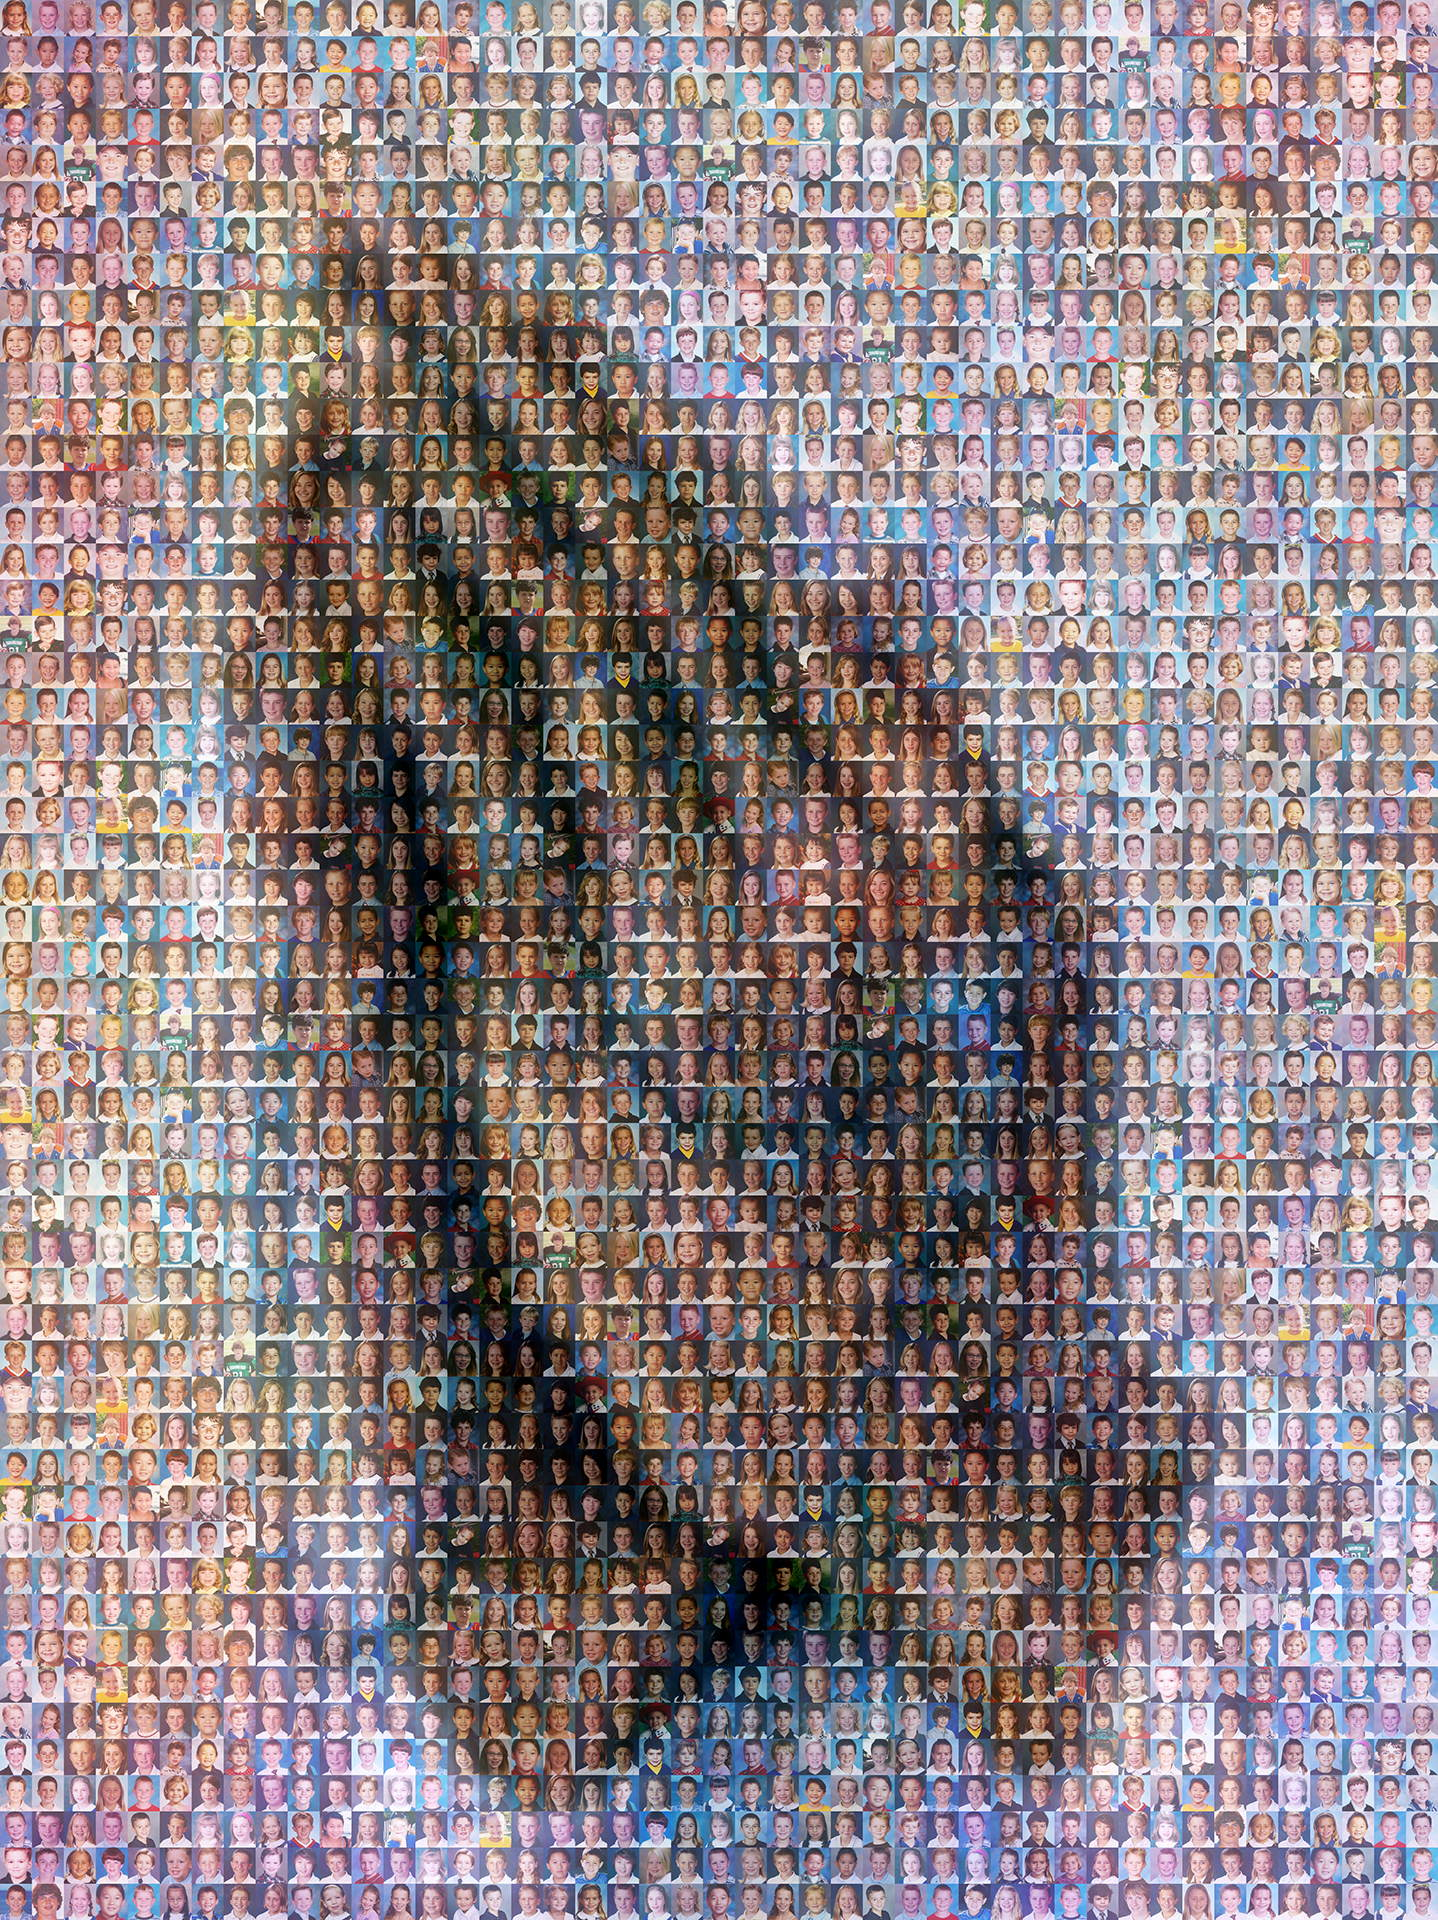 photo mosaic created using 221 student taken portraits